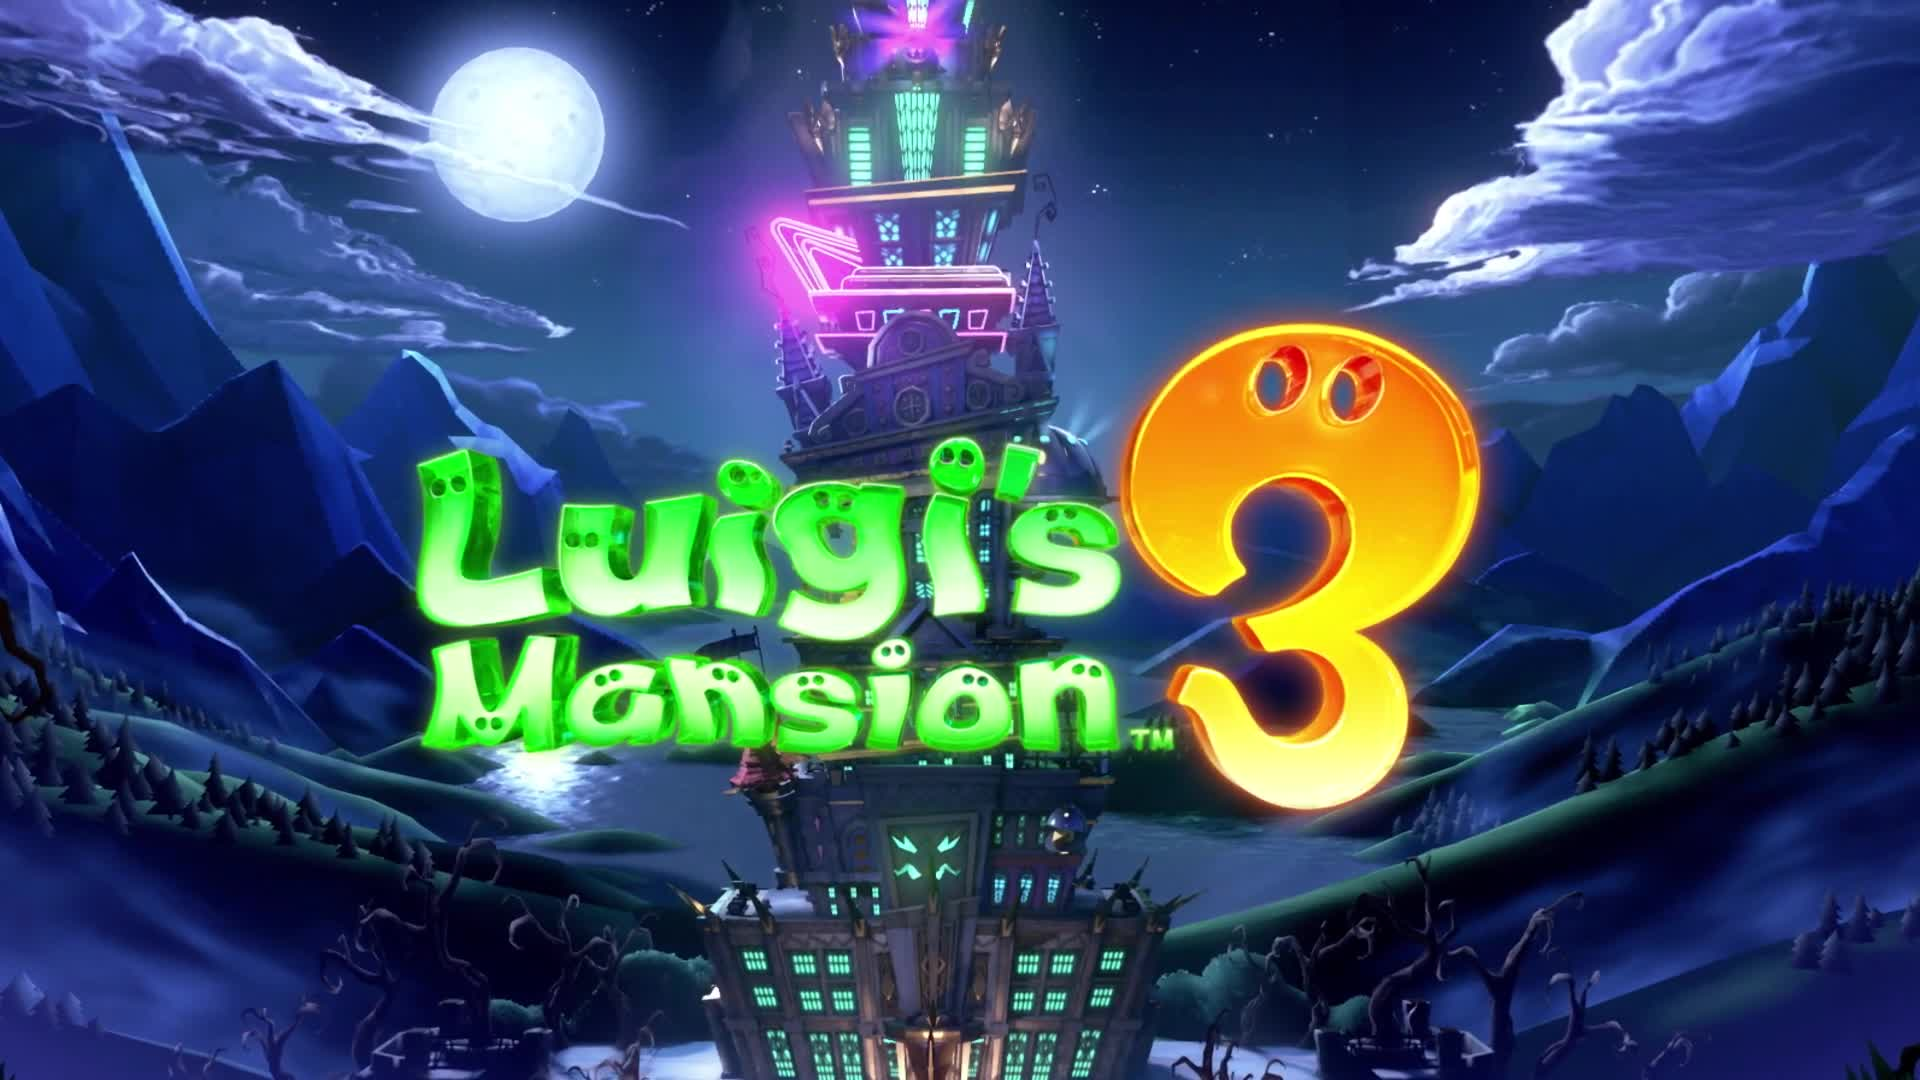 Luigi's Mansion 3 - E3 2019 Spotlight [HD] screen capture